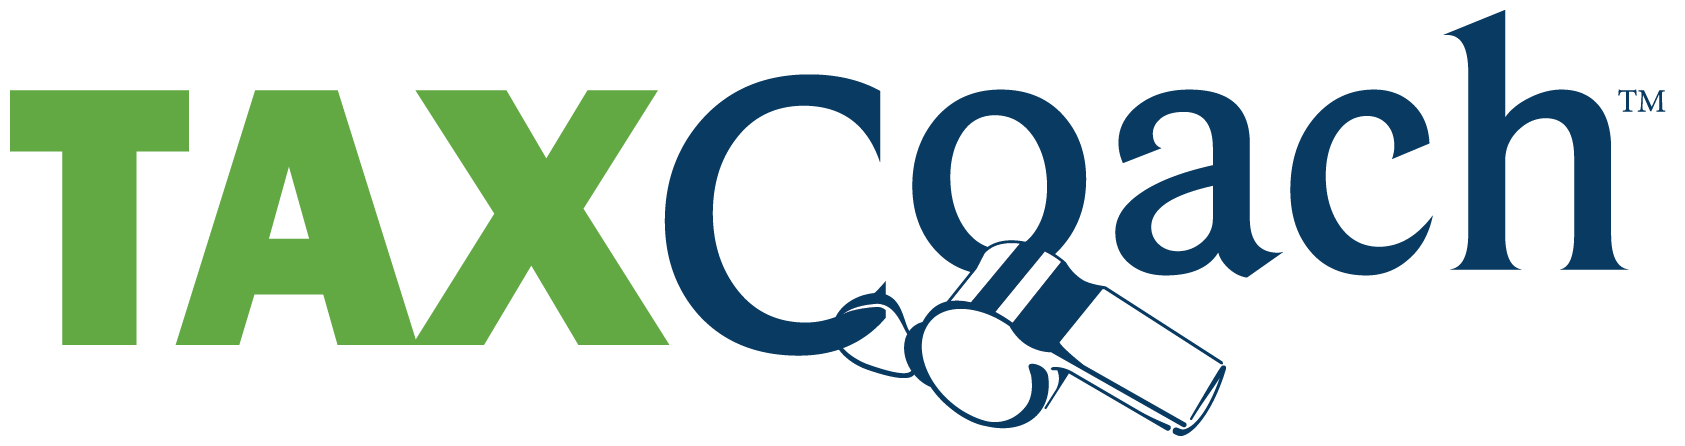 TaxCoach logo